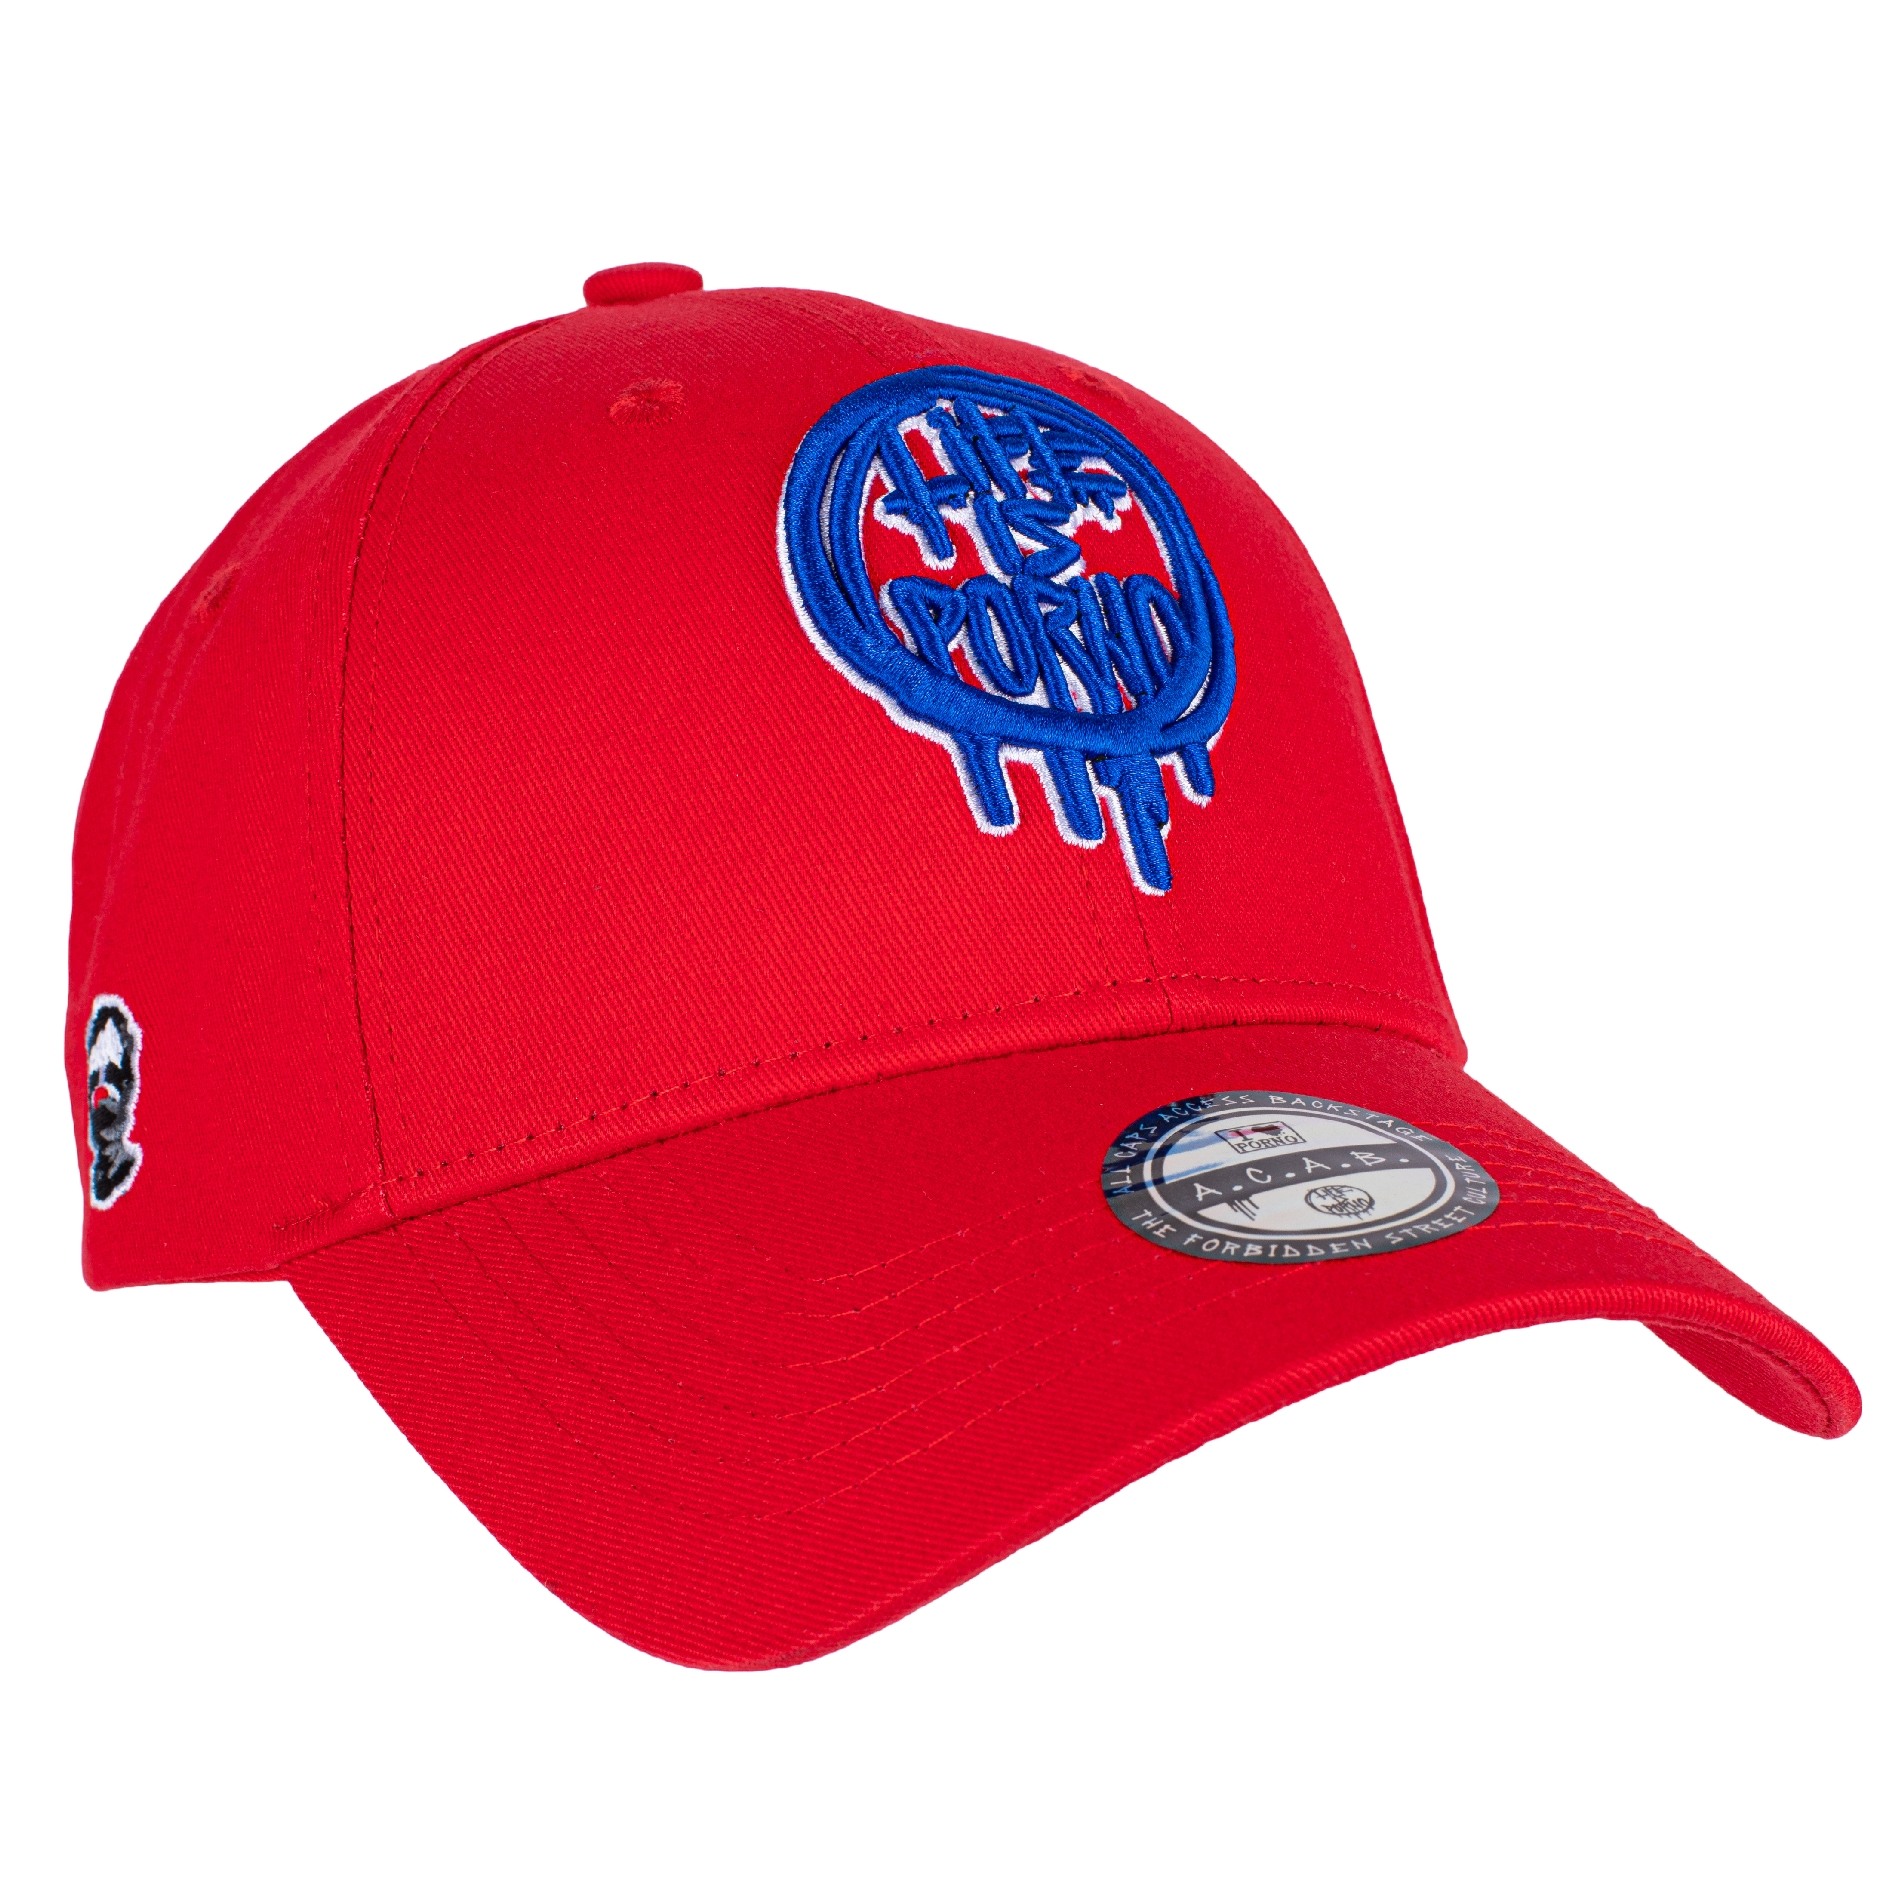 PLAYBALL CAP RED